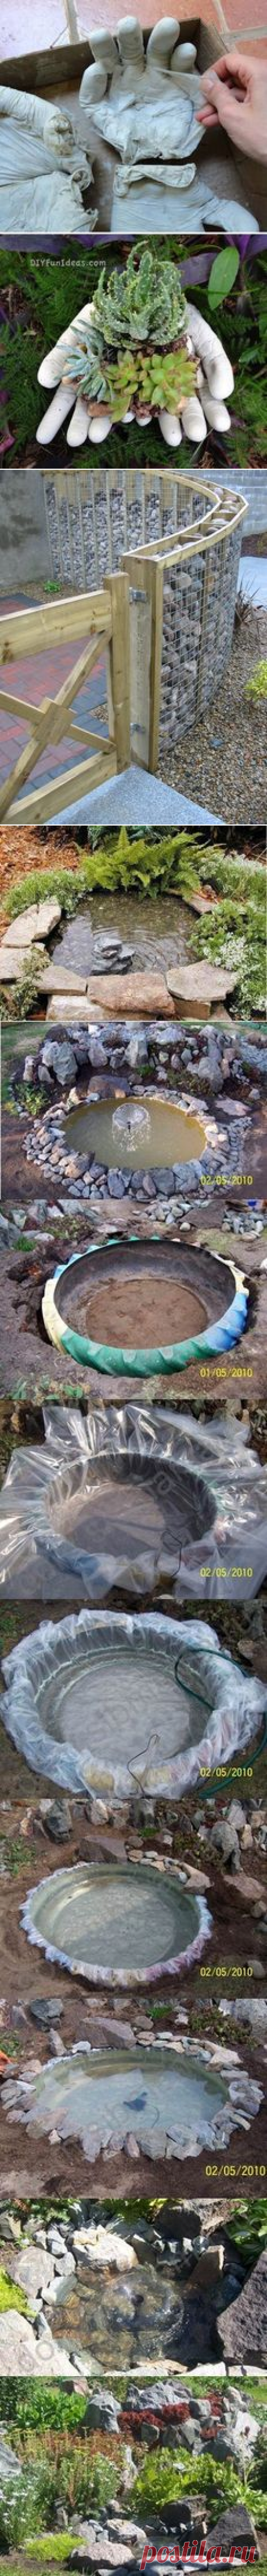 (1065) 10 Garden Decorating Ideas with Rocks and Stones - Ideas for garden decorations | Muebles